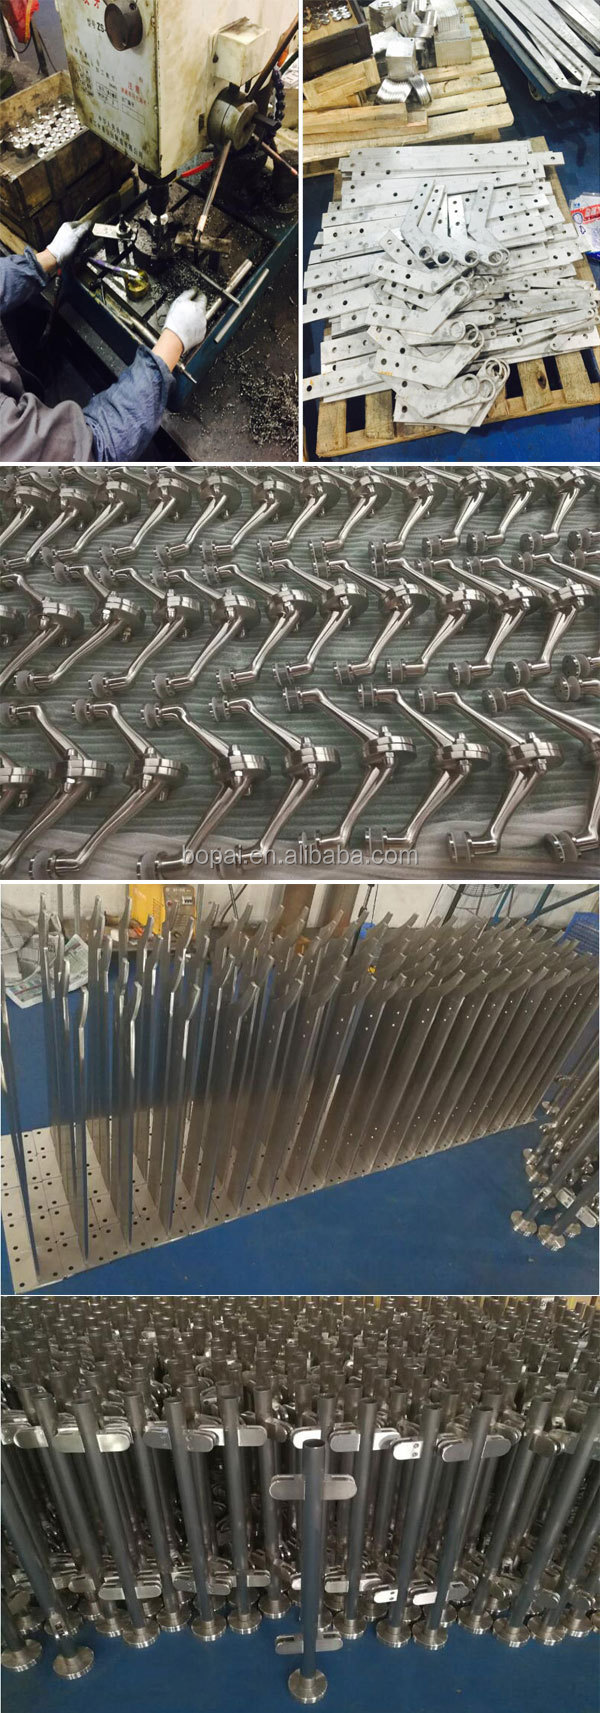 Hot sale stainless steel railings price/modern terrace railing designs for railing wire systems